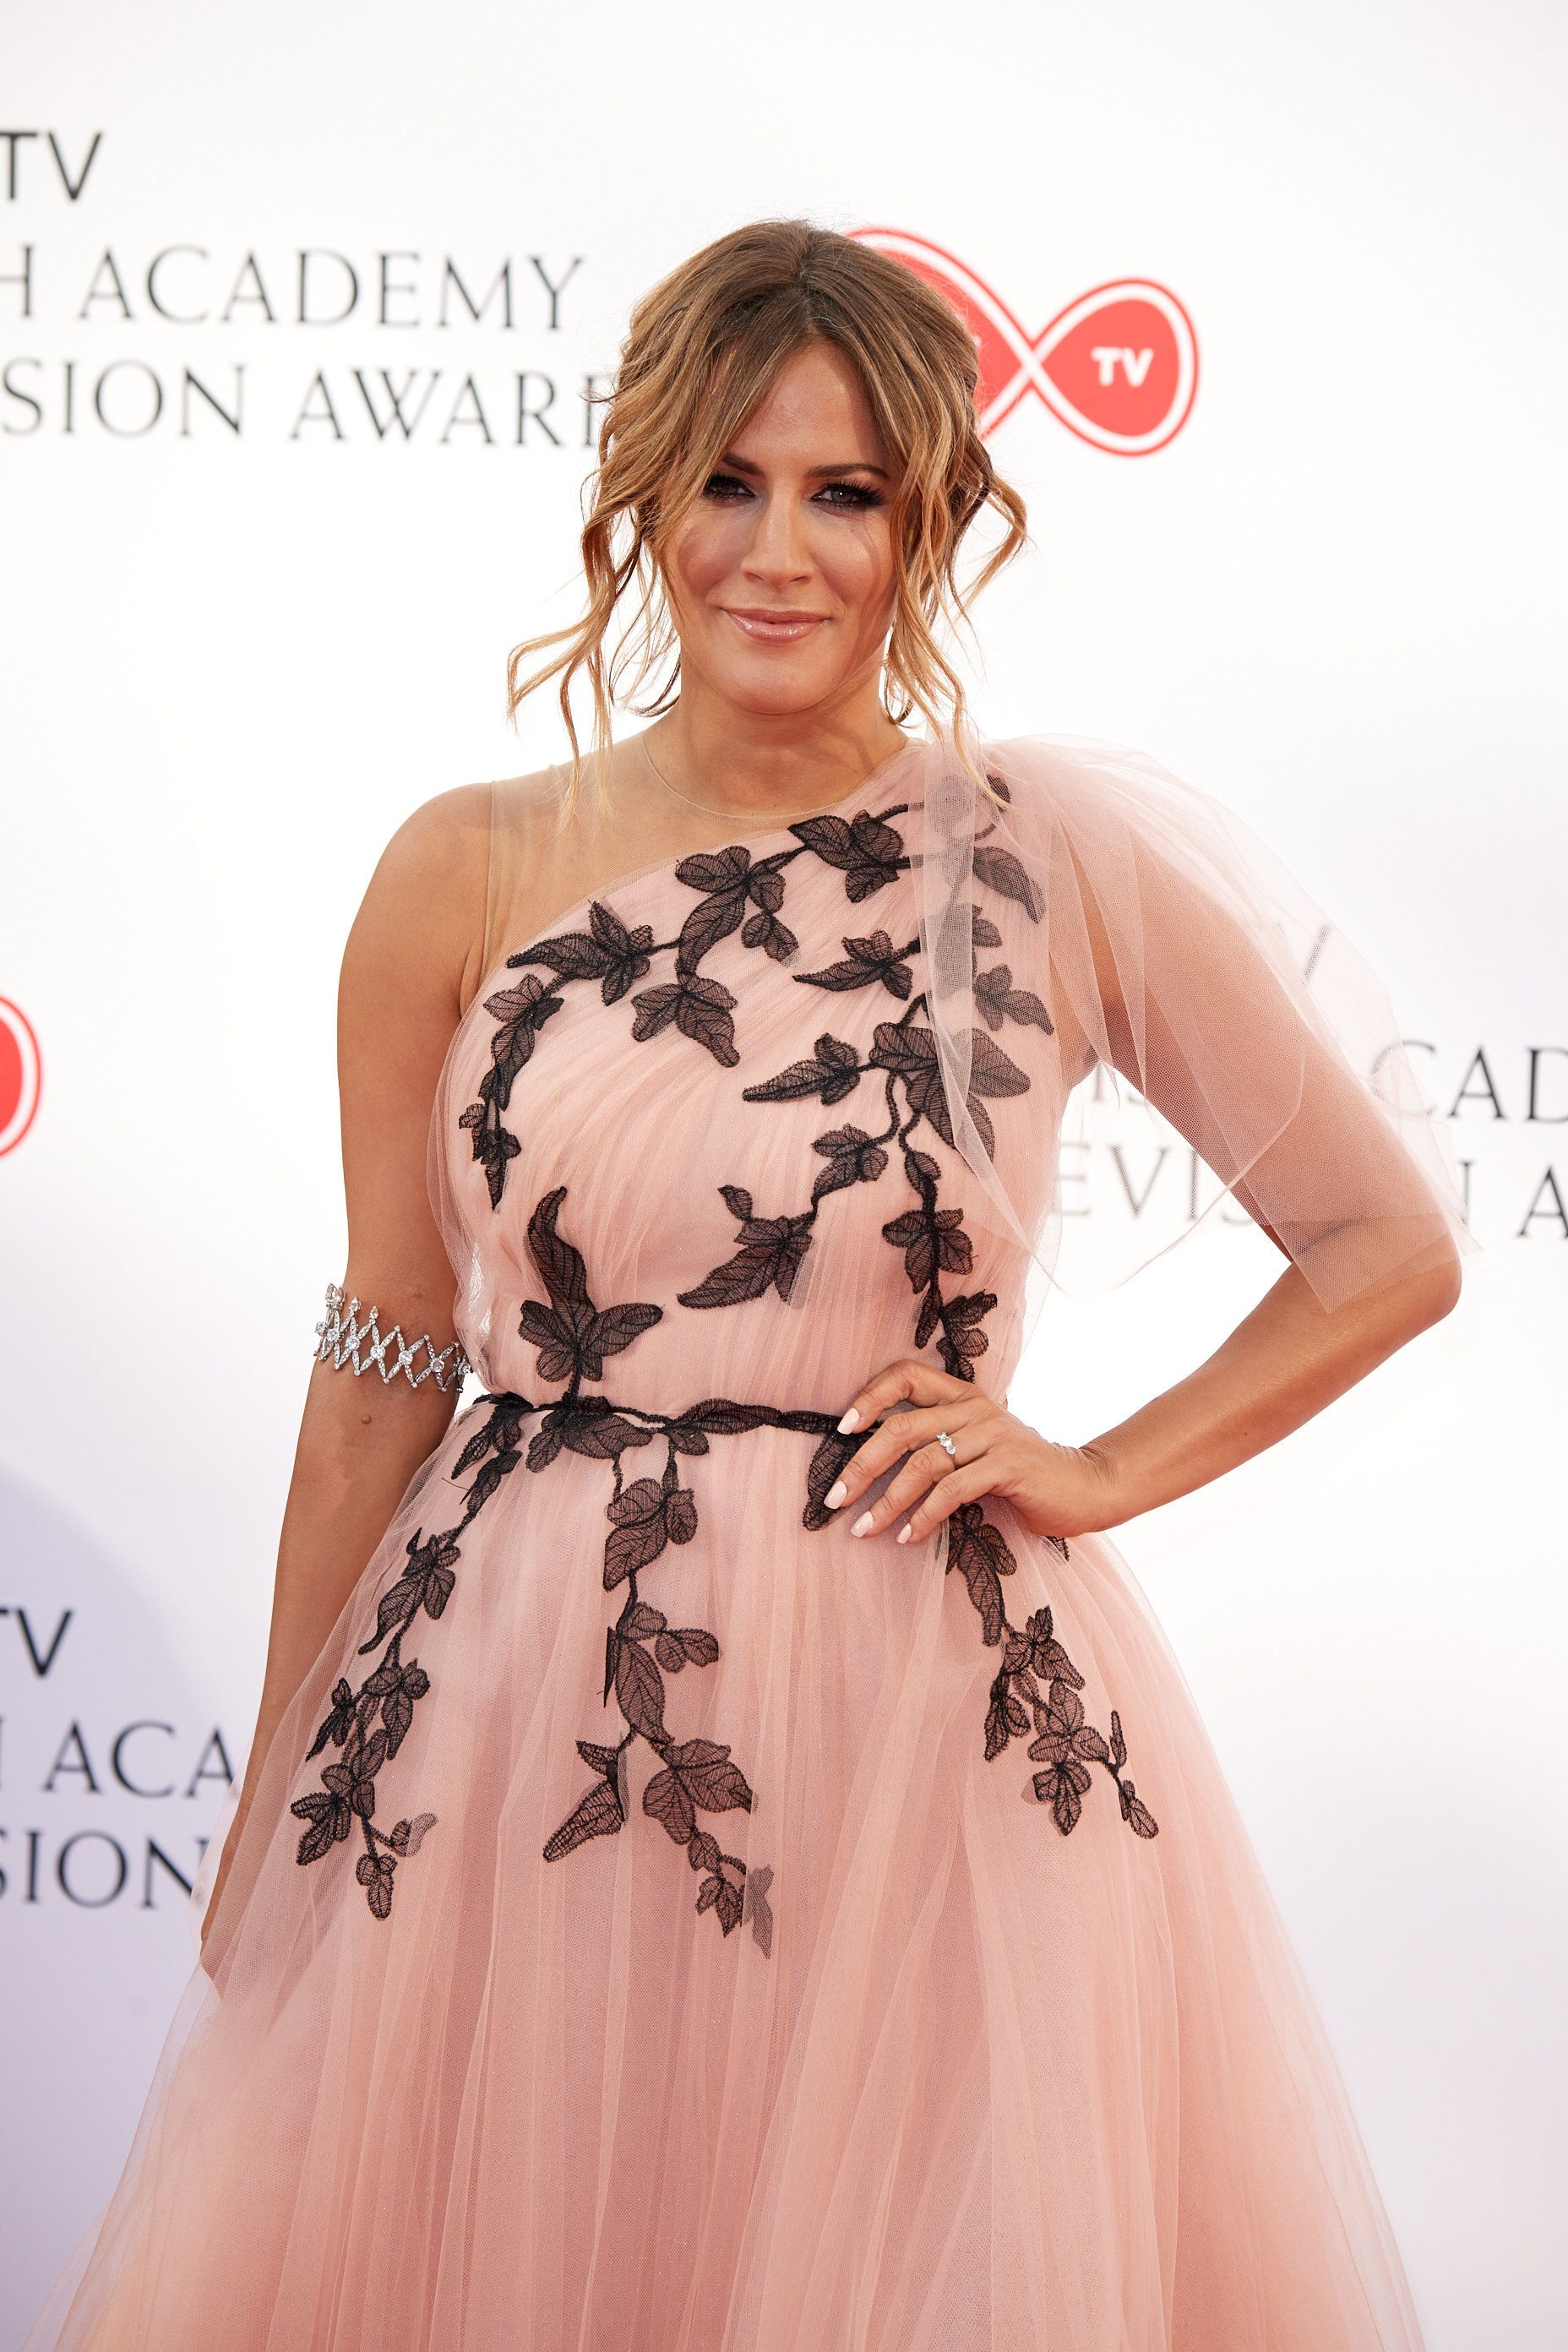 Caroline Flack Dismisses Age Gap Concerns Over Andrew Brady